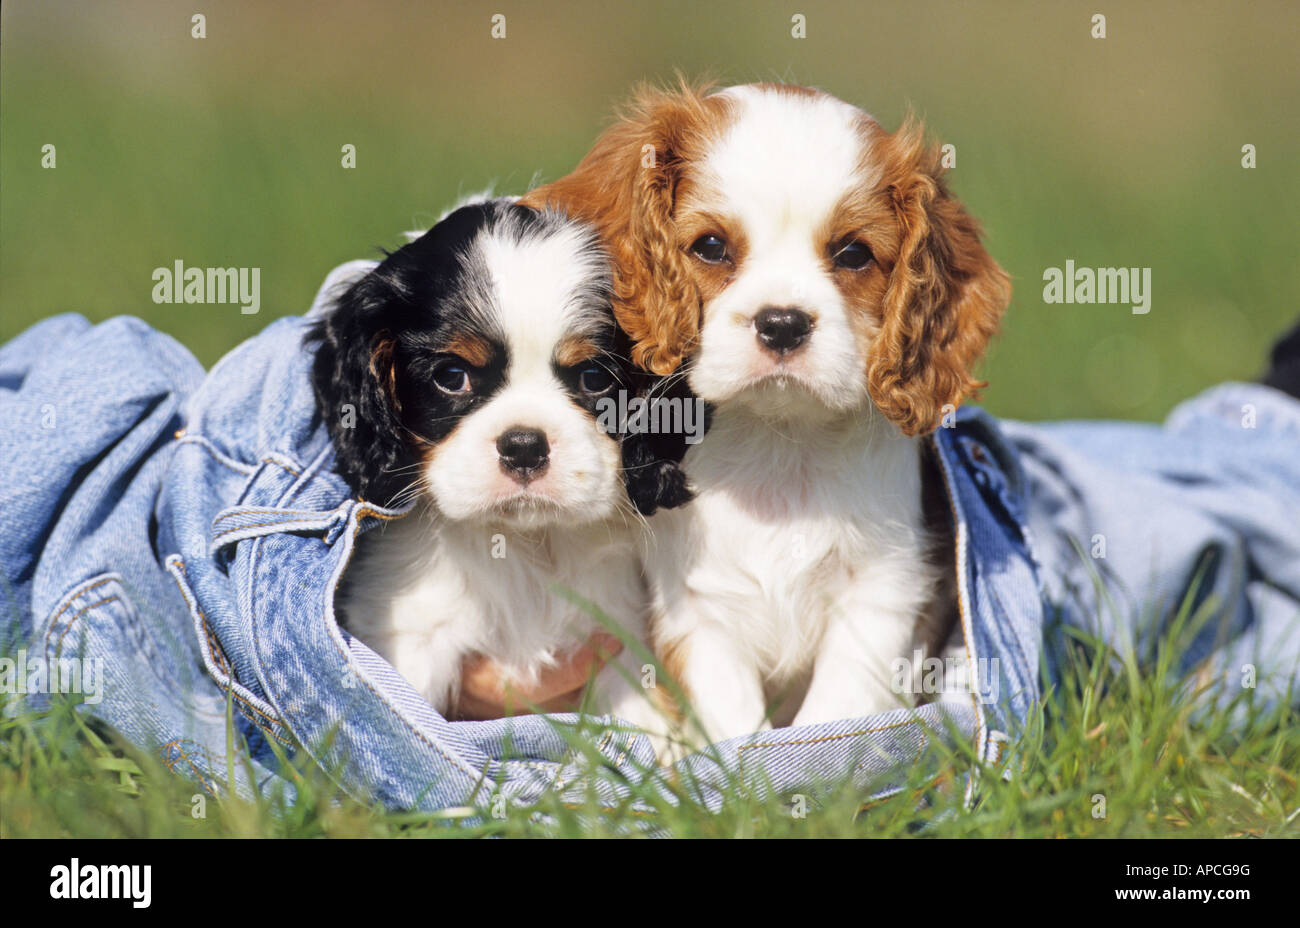 Cavalier King Charles Spaniel (Canis lupus familiaris), two puppies sitting in a jeans - Stock Image